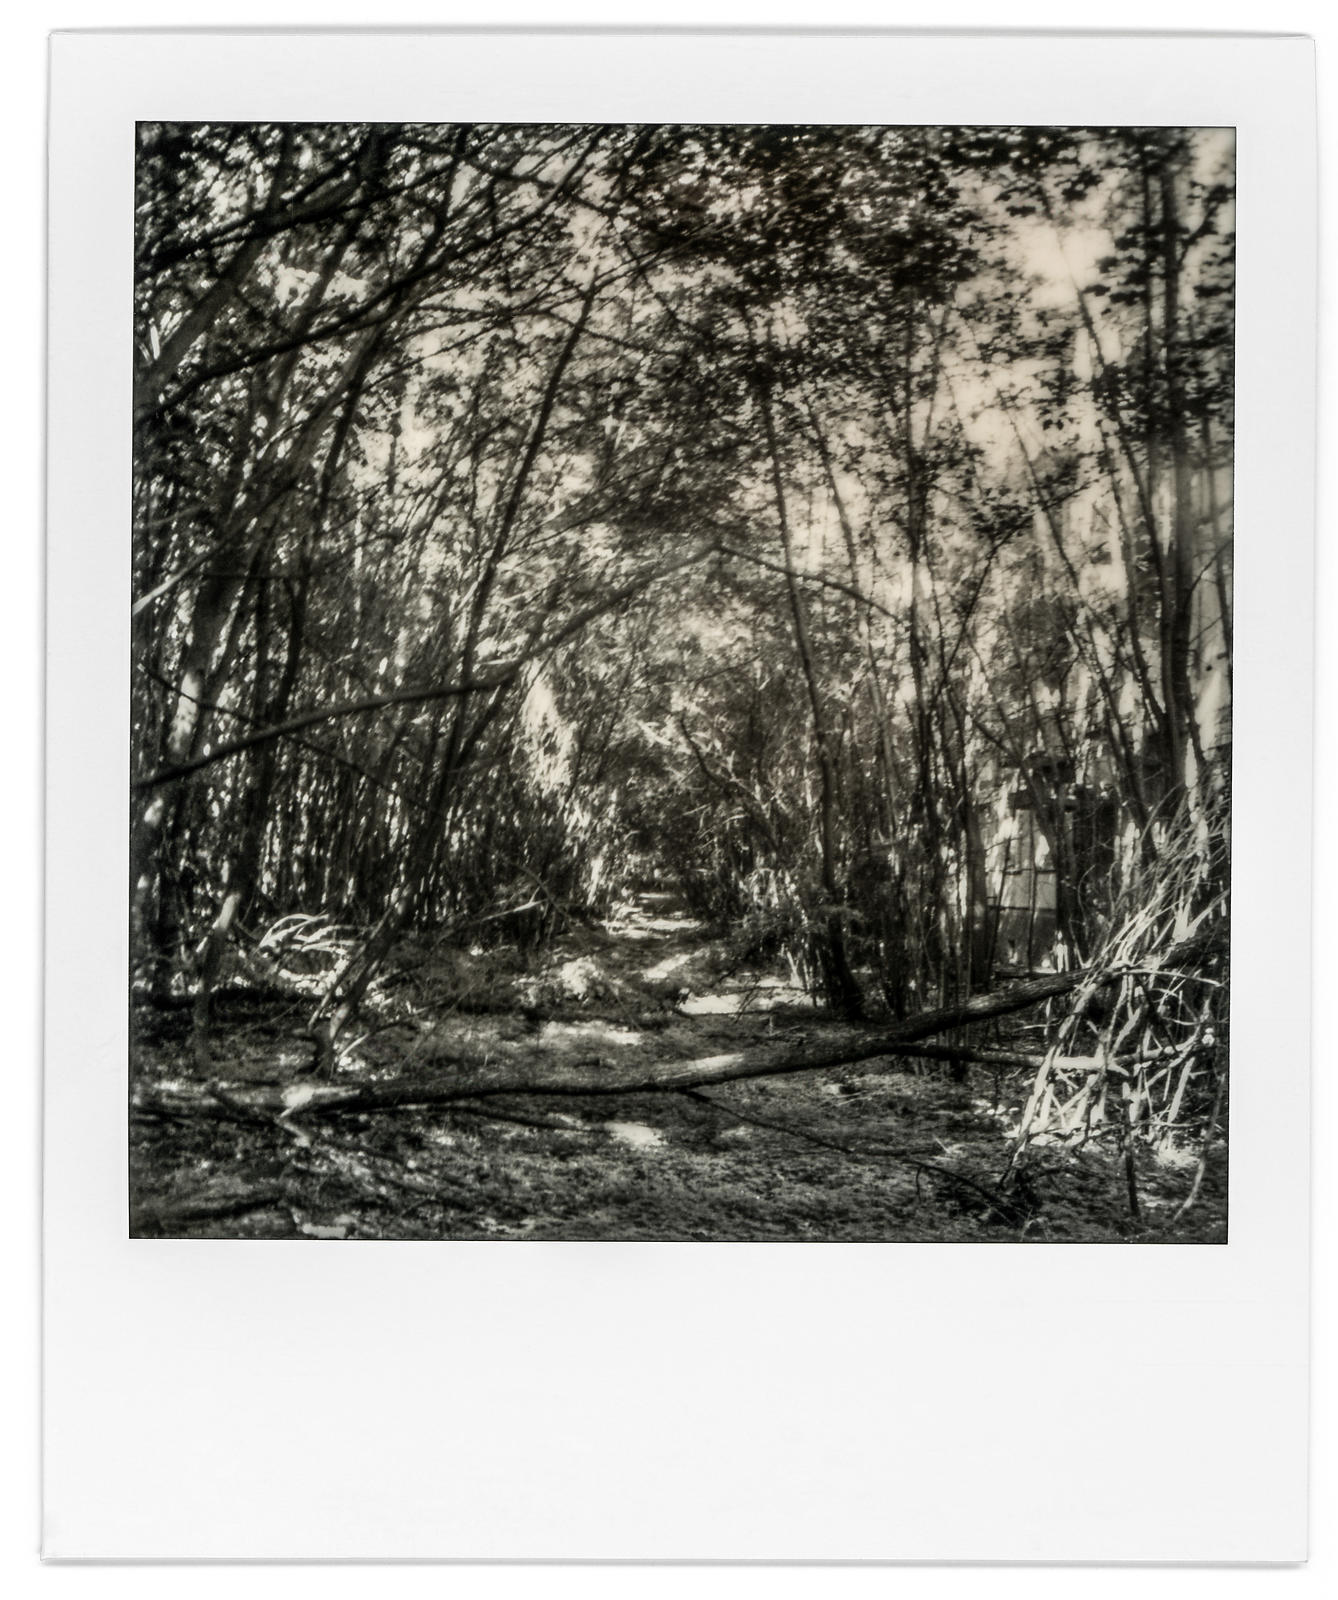 photo-polaroid-tchernobyl-chernobyl-361